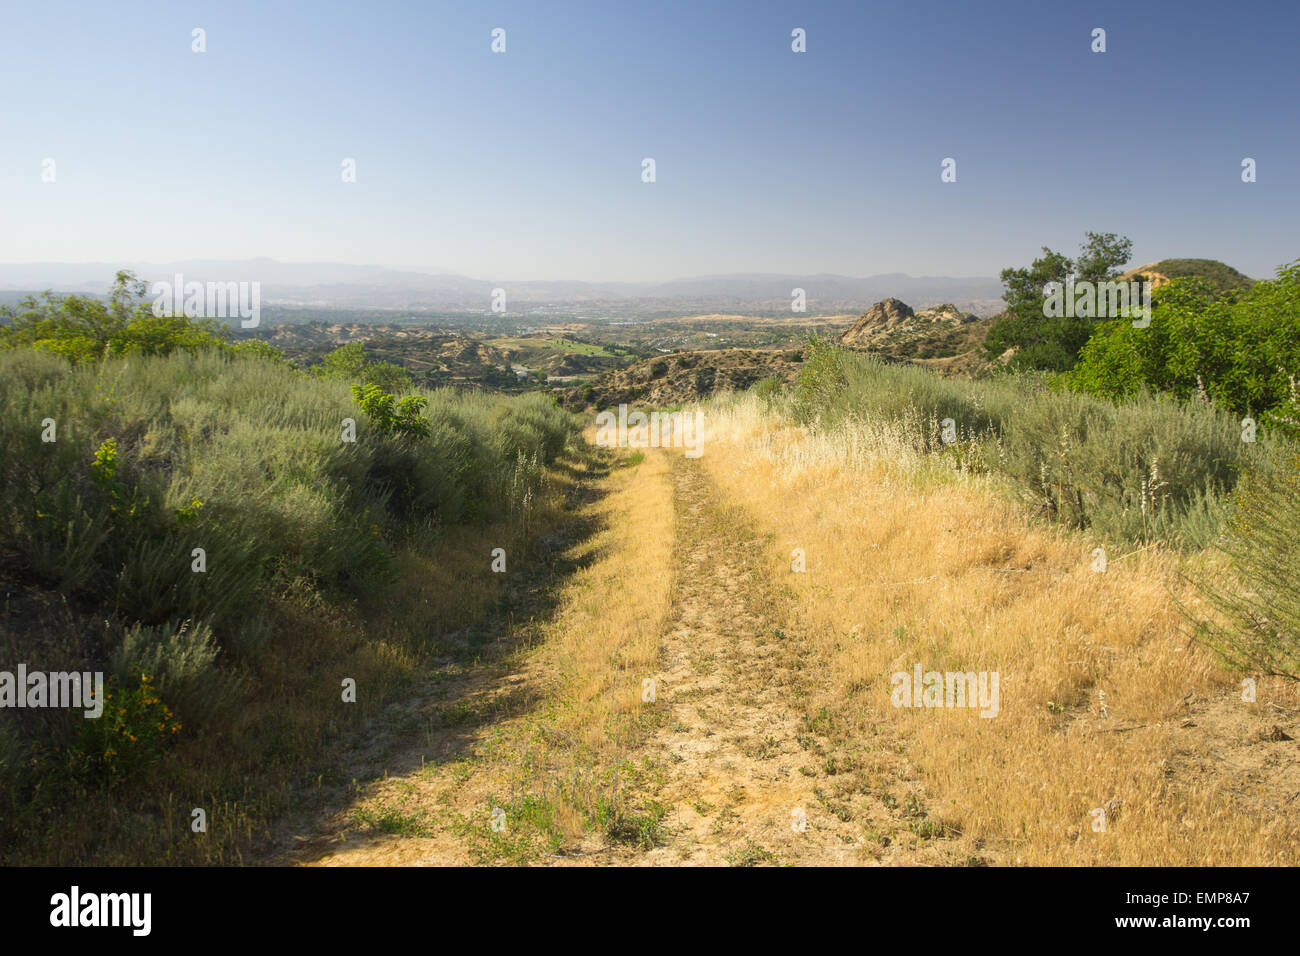 Lush hiking trail in hills of southern California. - Stock Image